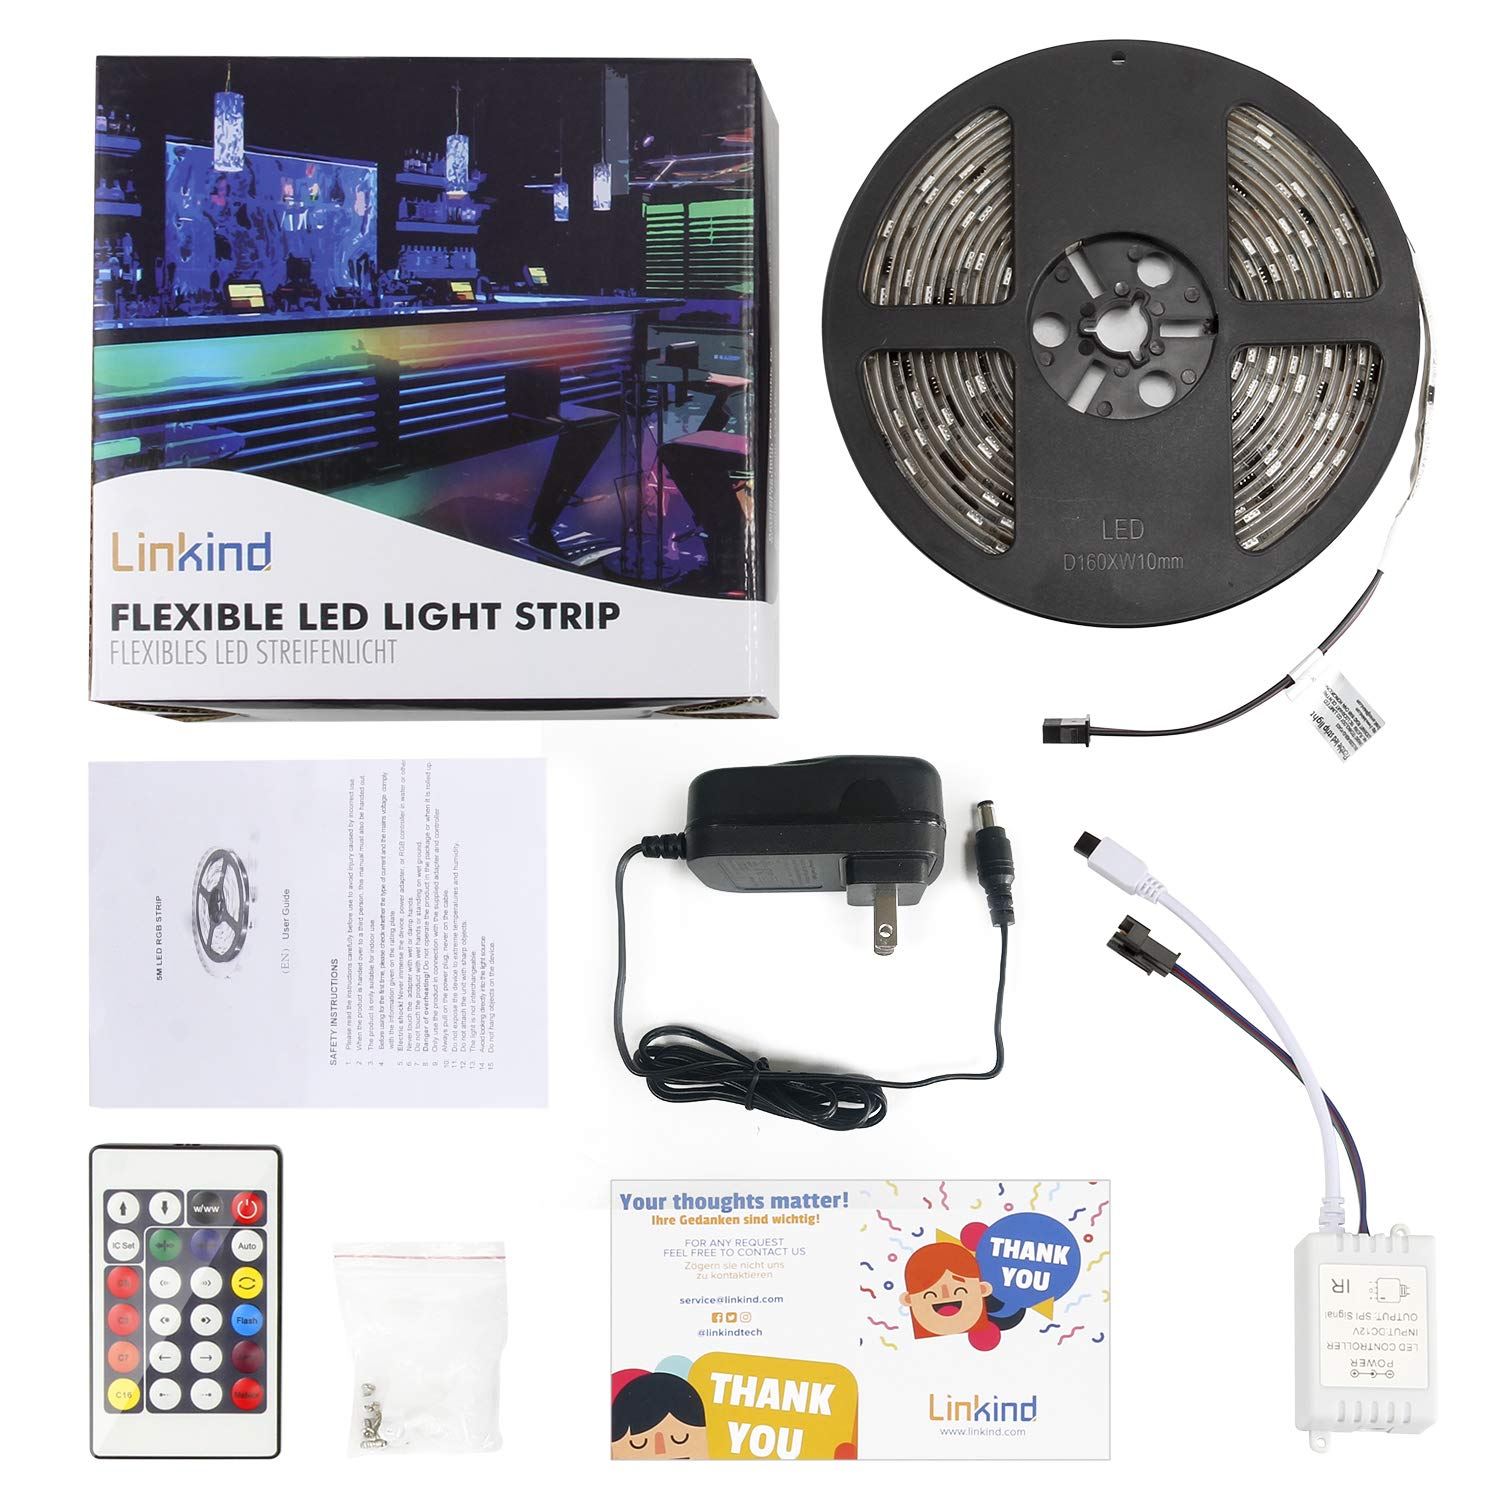 Dreamcolor 16.4ft LED Strip Lights with Remote, Linkind RGB Color Changing Waterproof Light Strip kit, 164 Light Programs with Remote Controller, Cuttable and self-Adhesive